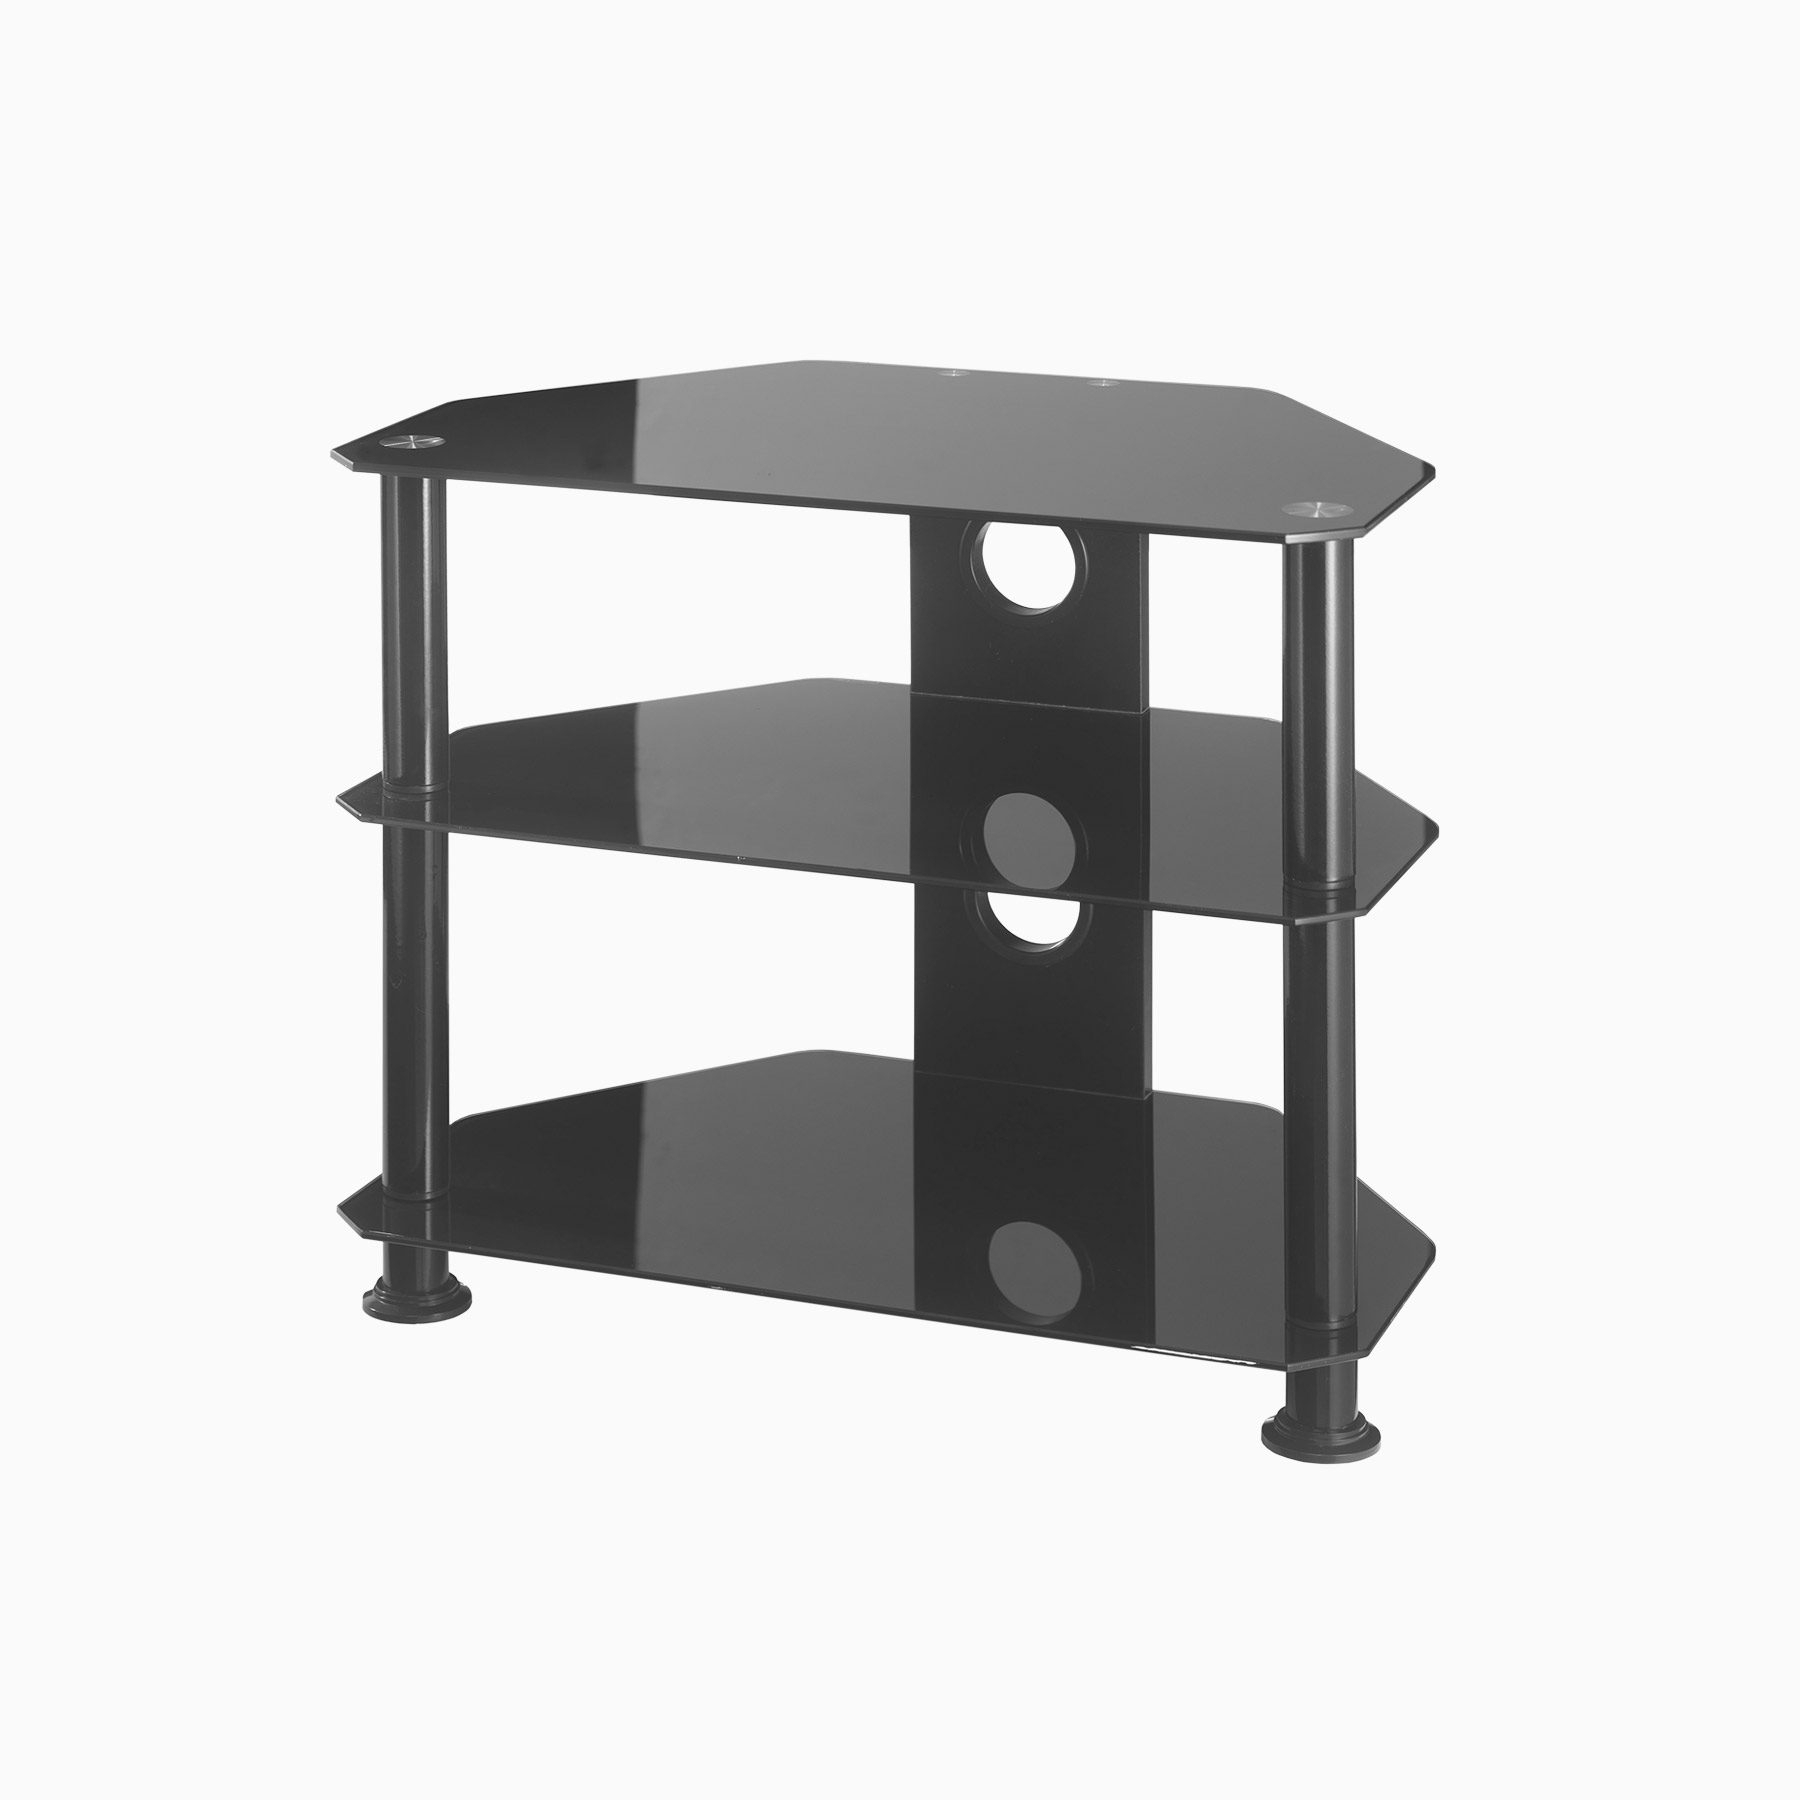 Mmt Db600 Pertaining To Well Known Black Glass Tv Stands (View 14 of 20)